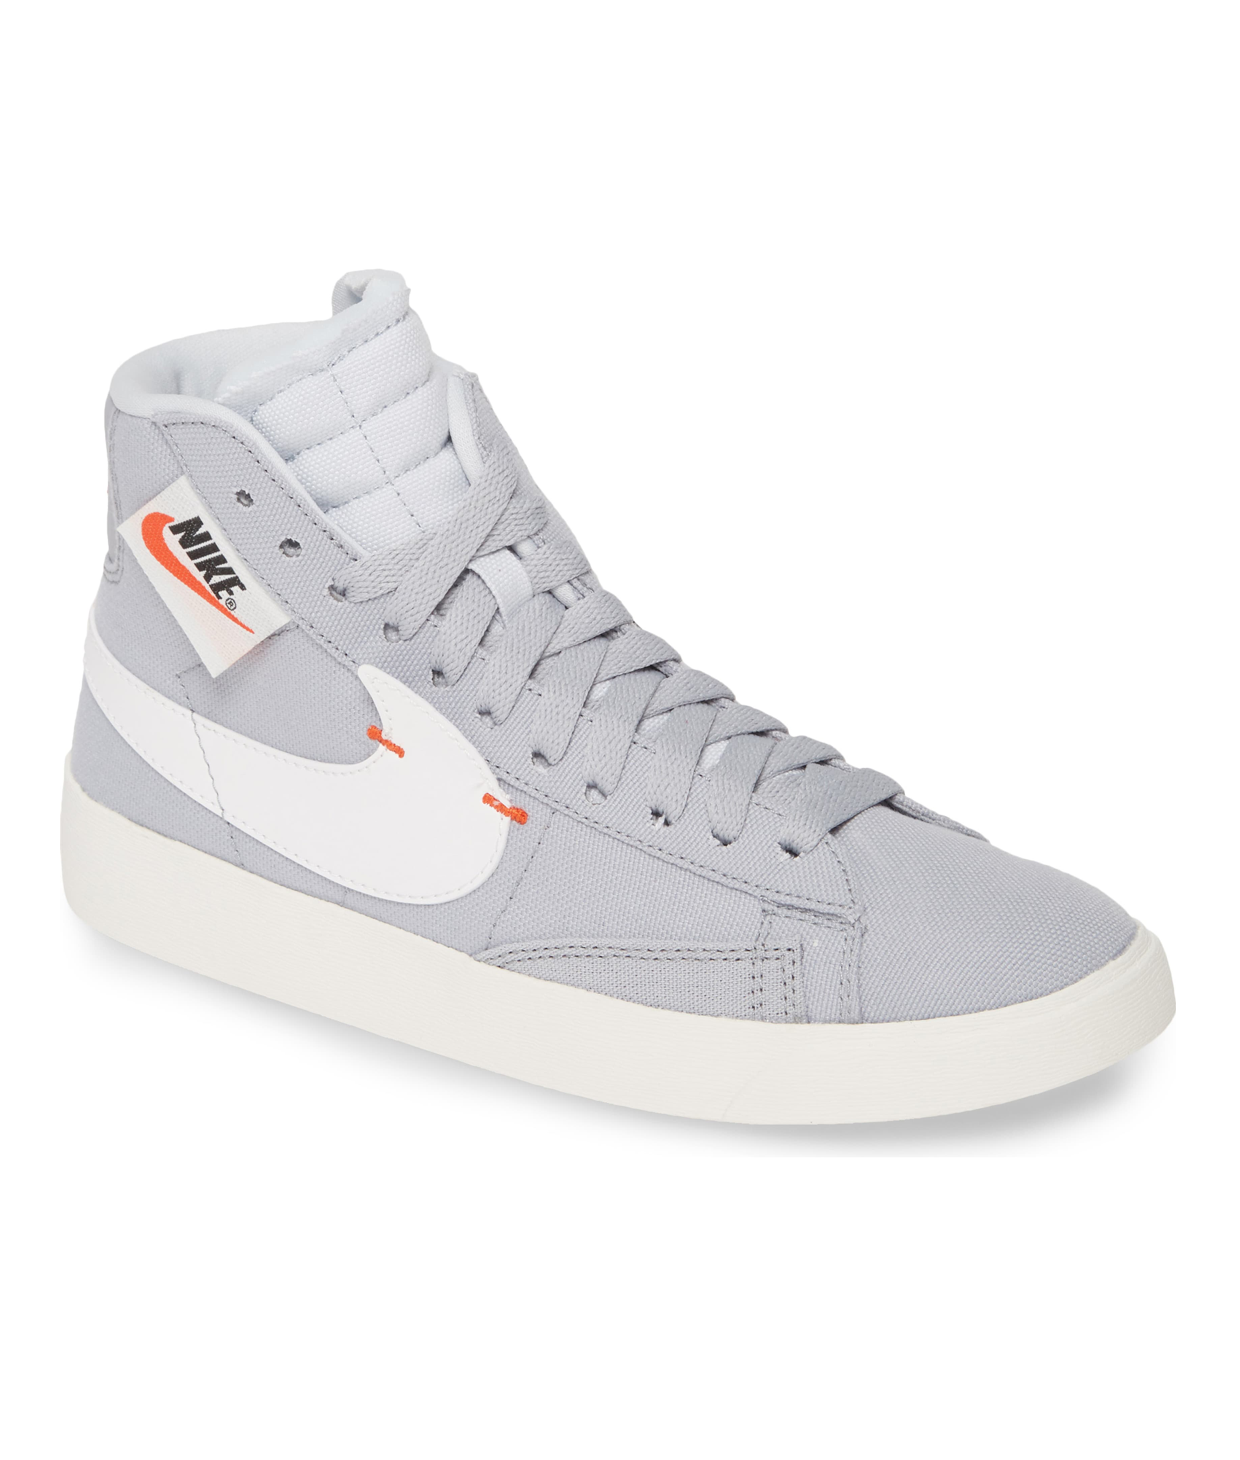 Gray and White High Top Sneaker